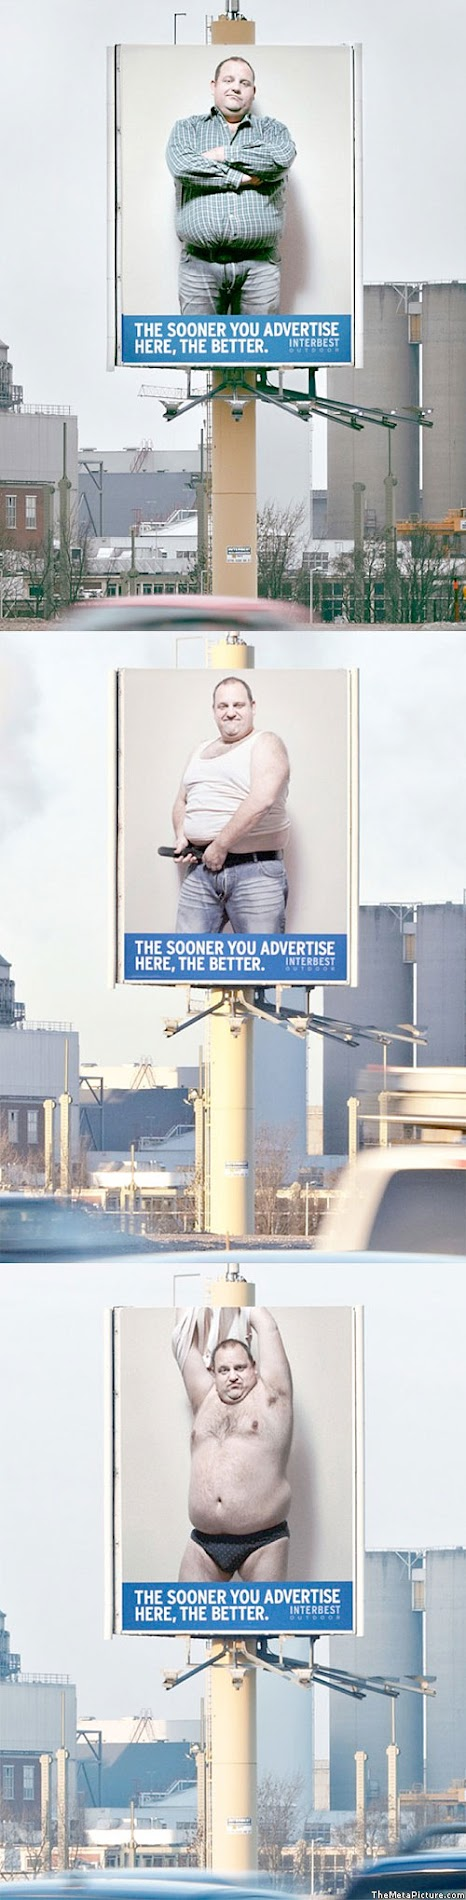 the sooner you advertise here the better